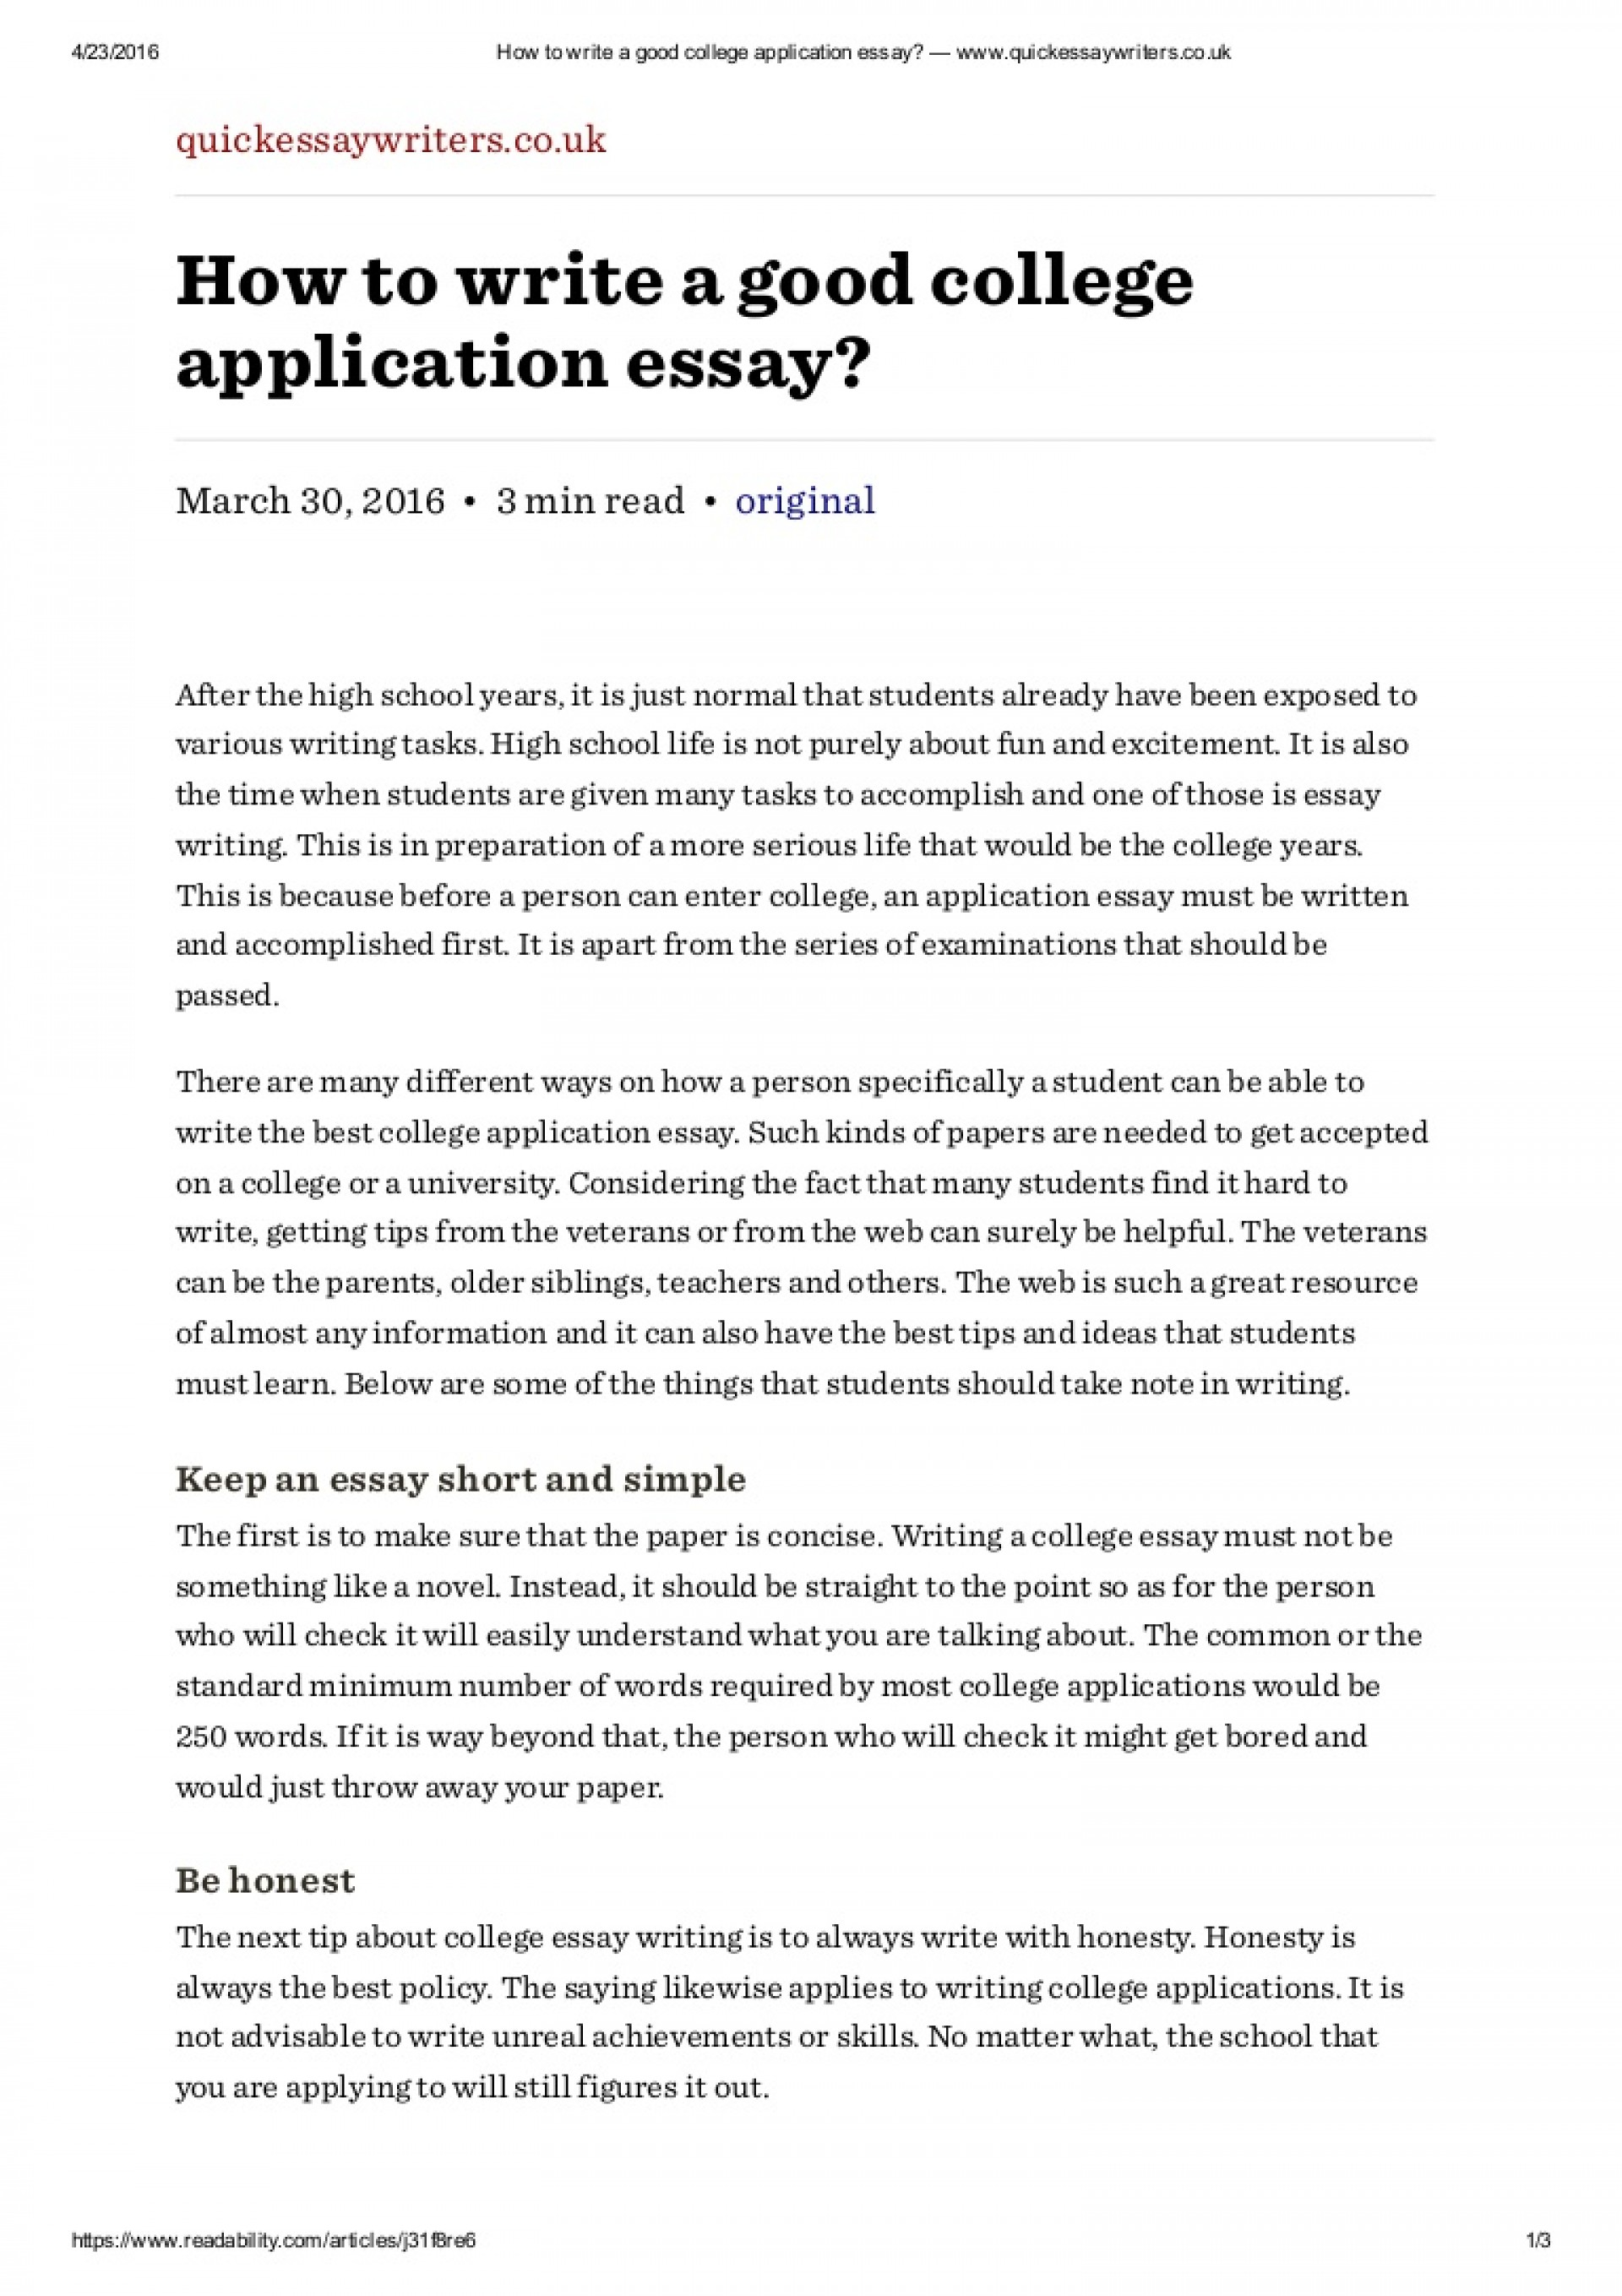 008 Essay Exampleonestyow To Write Good College Application Writing Essays Sampleowtowriteagoodcollegeapplicationessaywww Thumbn Scholarship For Your Mba Examples University Staggering Honesty In Tamil Pdf 1920